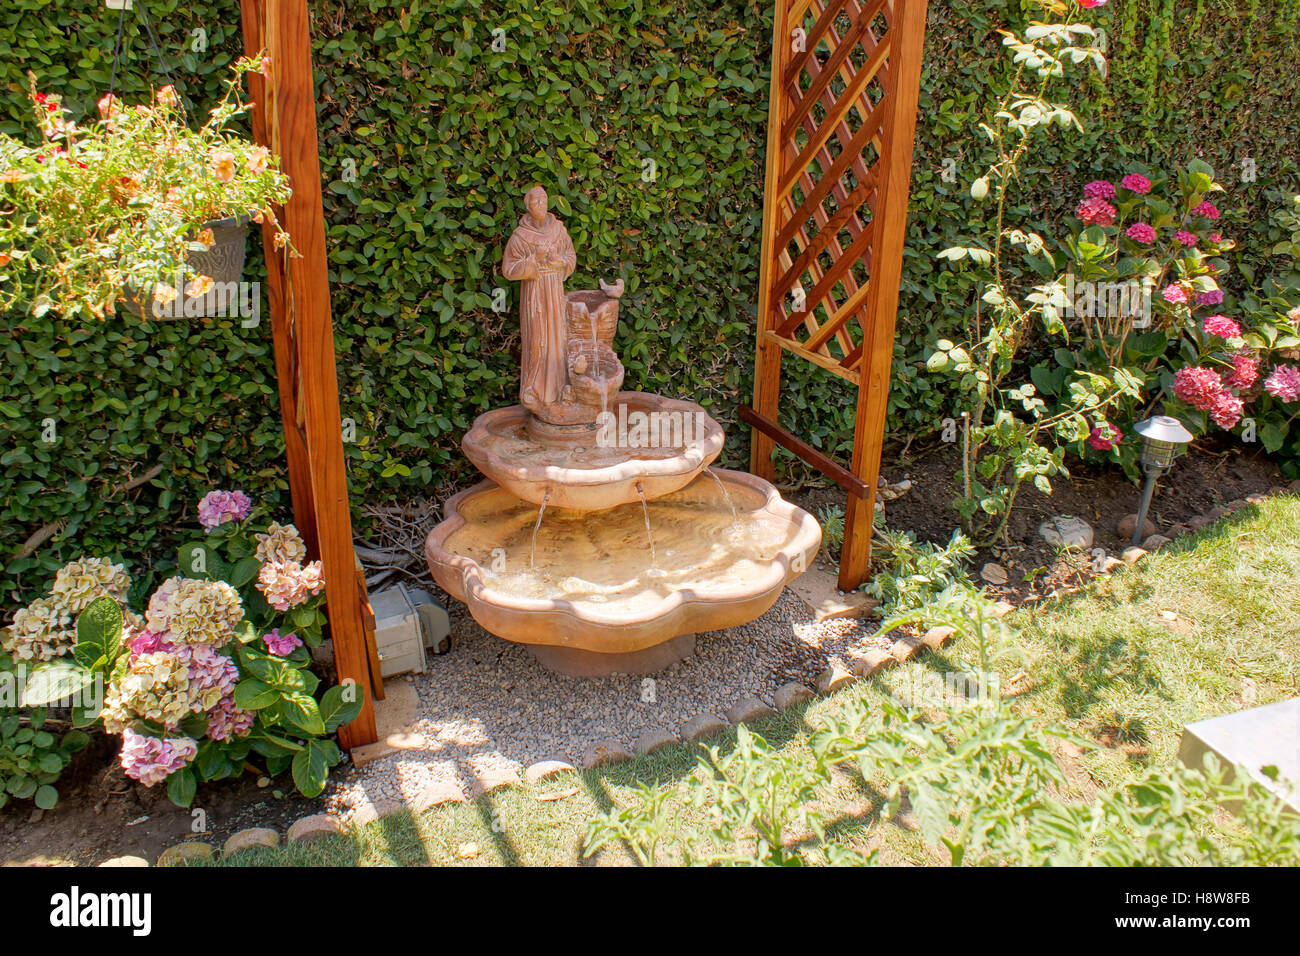 Saint francis of assisi statue in a backyard water fountain